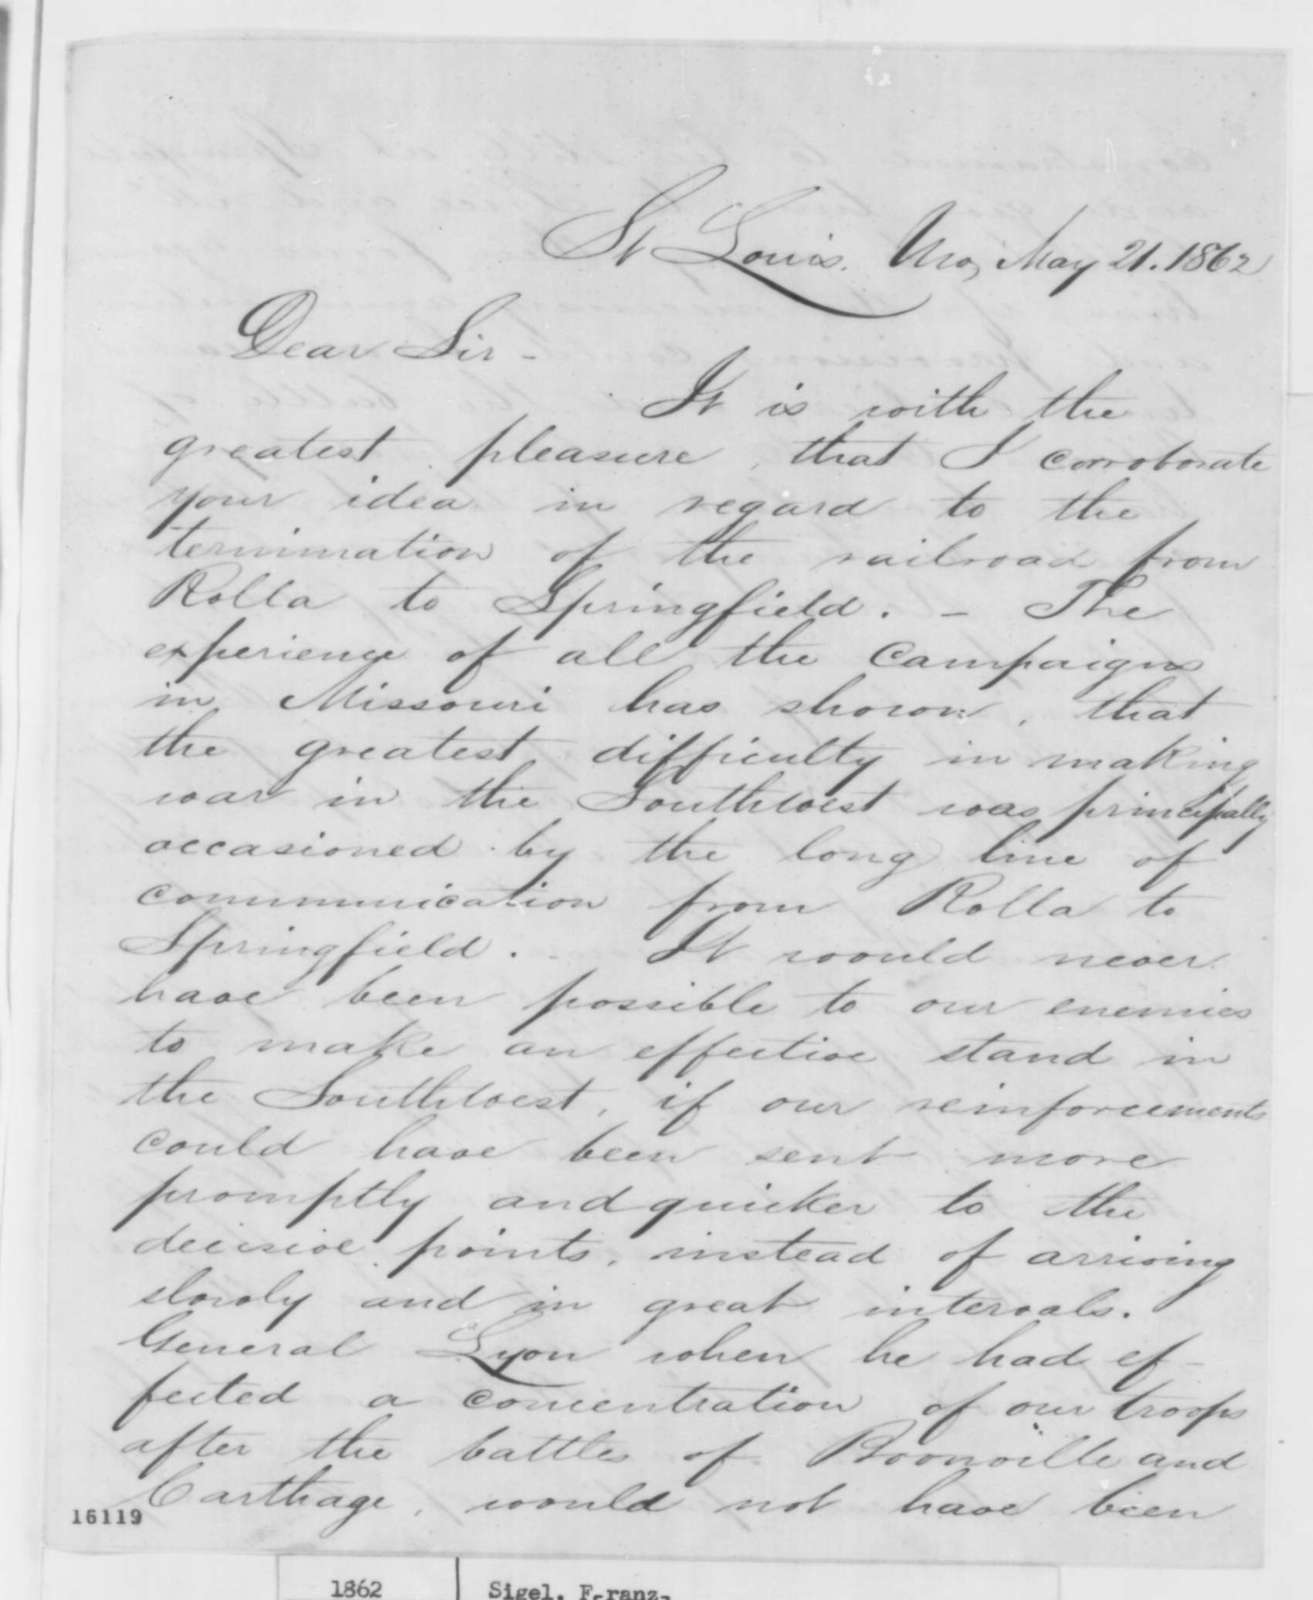 Franz Sigel to Charles Gibson, Wednesday, May 21, 1862  (Railroad in Missouri)